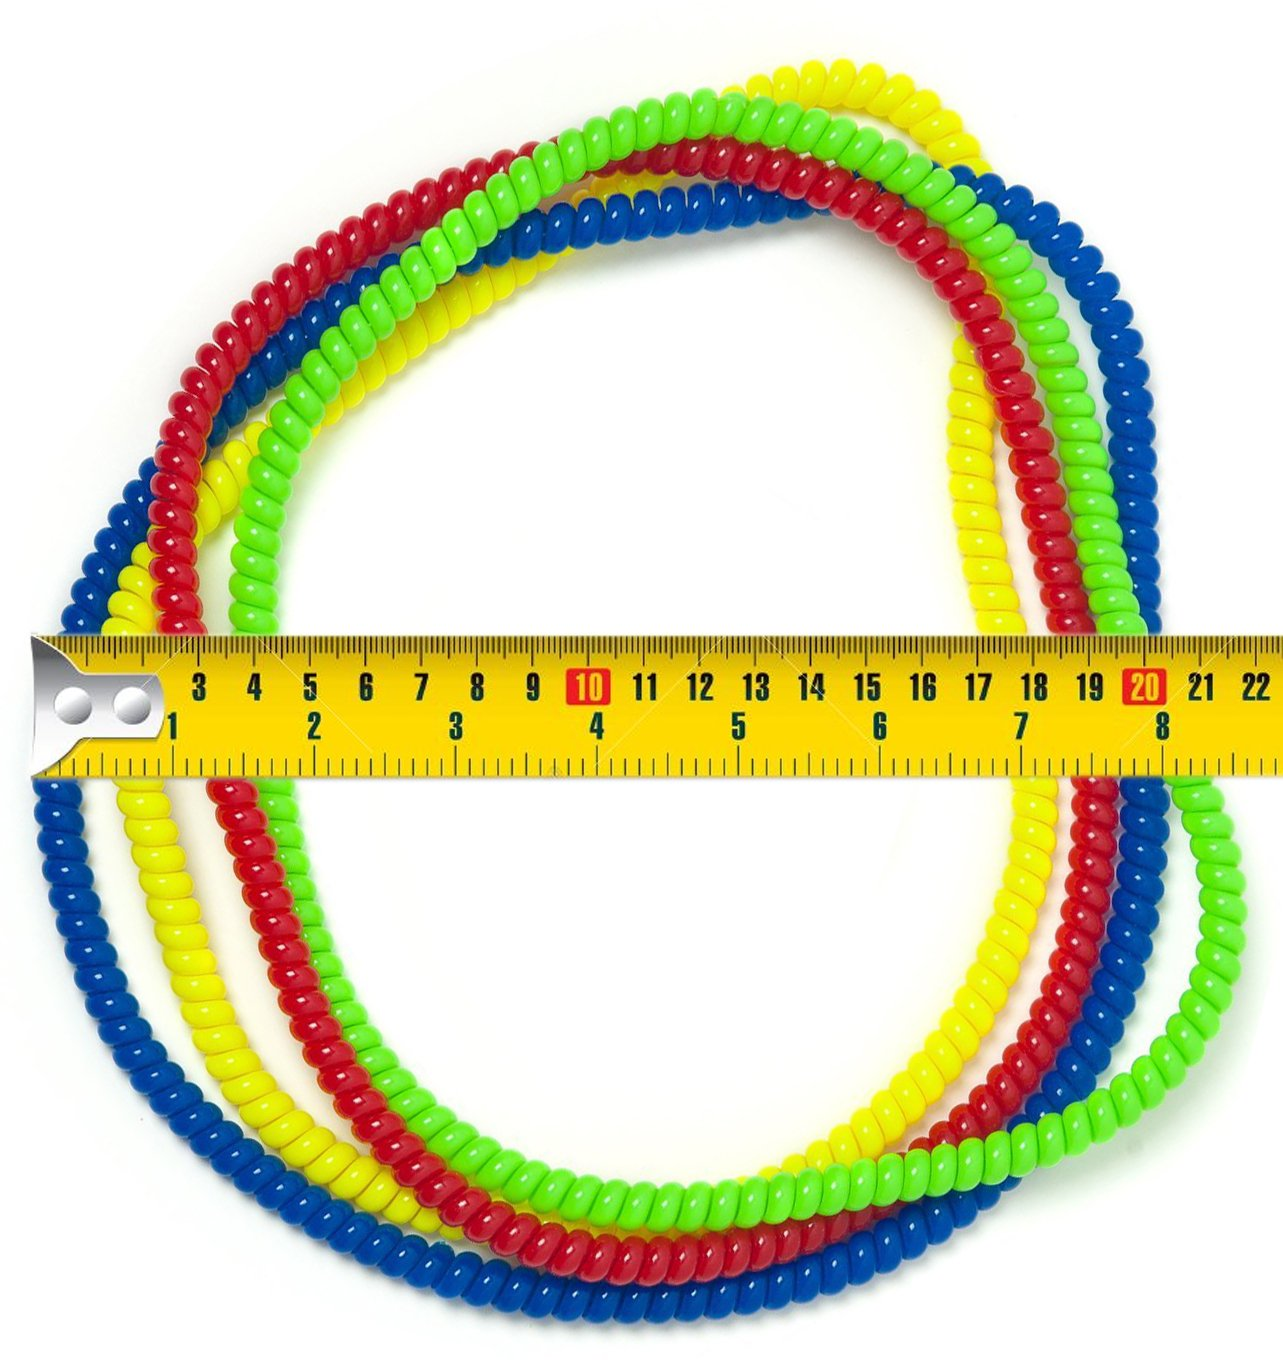 Chew Necklace Sensory Jewelry - Fun Sensory Motor Aid Chewelry for Boys & Girls with Autism ADHD & Sensory-Focused Needs - Oral Motor Chewing Biting Teething Help - Chewable Jewelry (8) by Everyday Educate (Image #6)